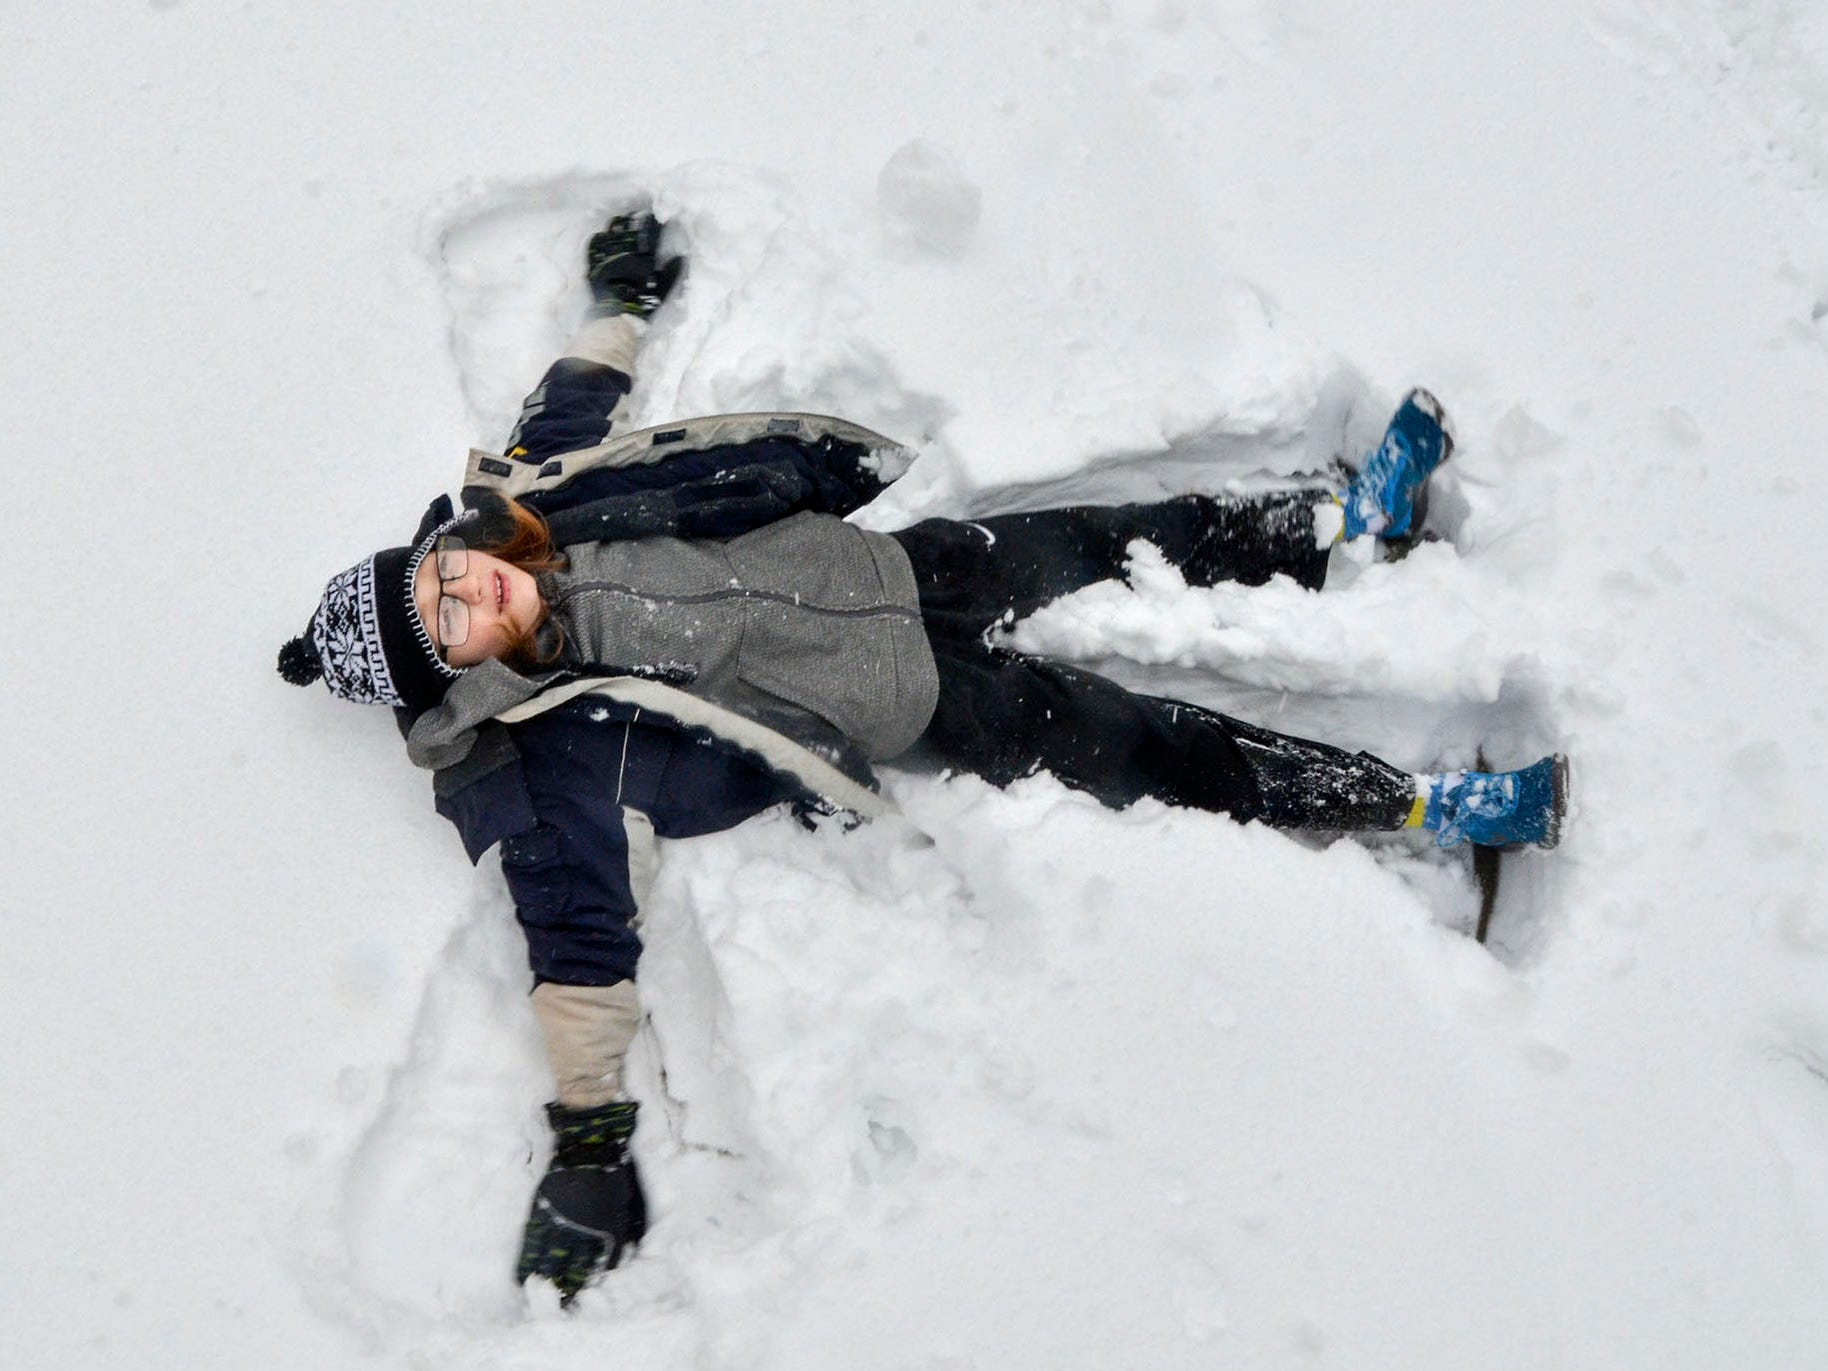 Noah Shober makes a snow angel outside of his house in Terre Haute, Ind., on Saturday, Jan. 12, 2019. A massive winter snowstorm making its way across the Midwest and into the Mid-Atlantic region blanketed most of Missouri and several other states. The storm moved east into Missouri, Iowa, Illinois and Indiana, covering roads and making driving dangerous. (Austen Leake/The Tribune-Star via AP) ORG XMIT: INTET102